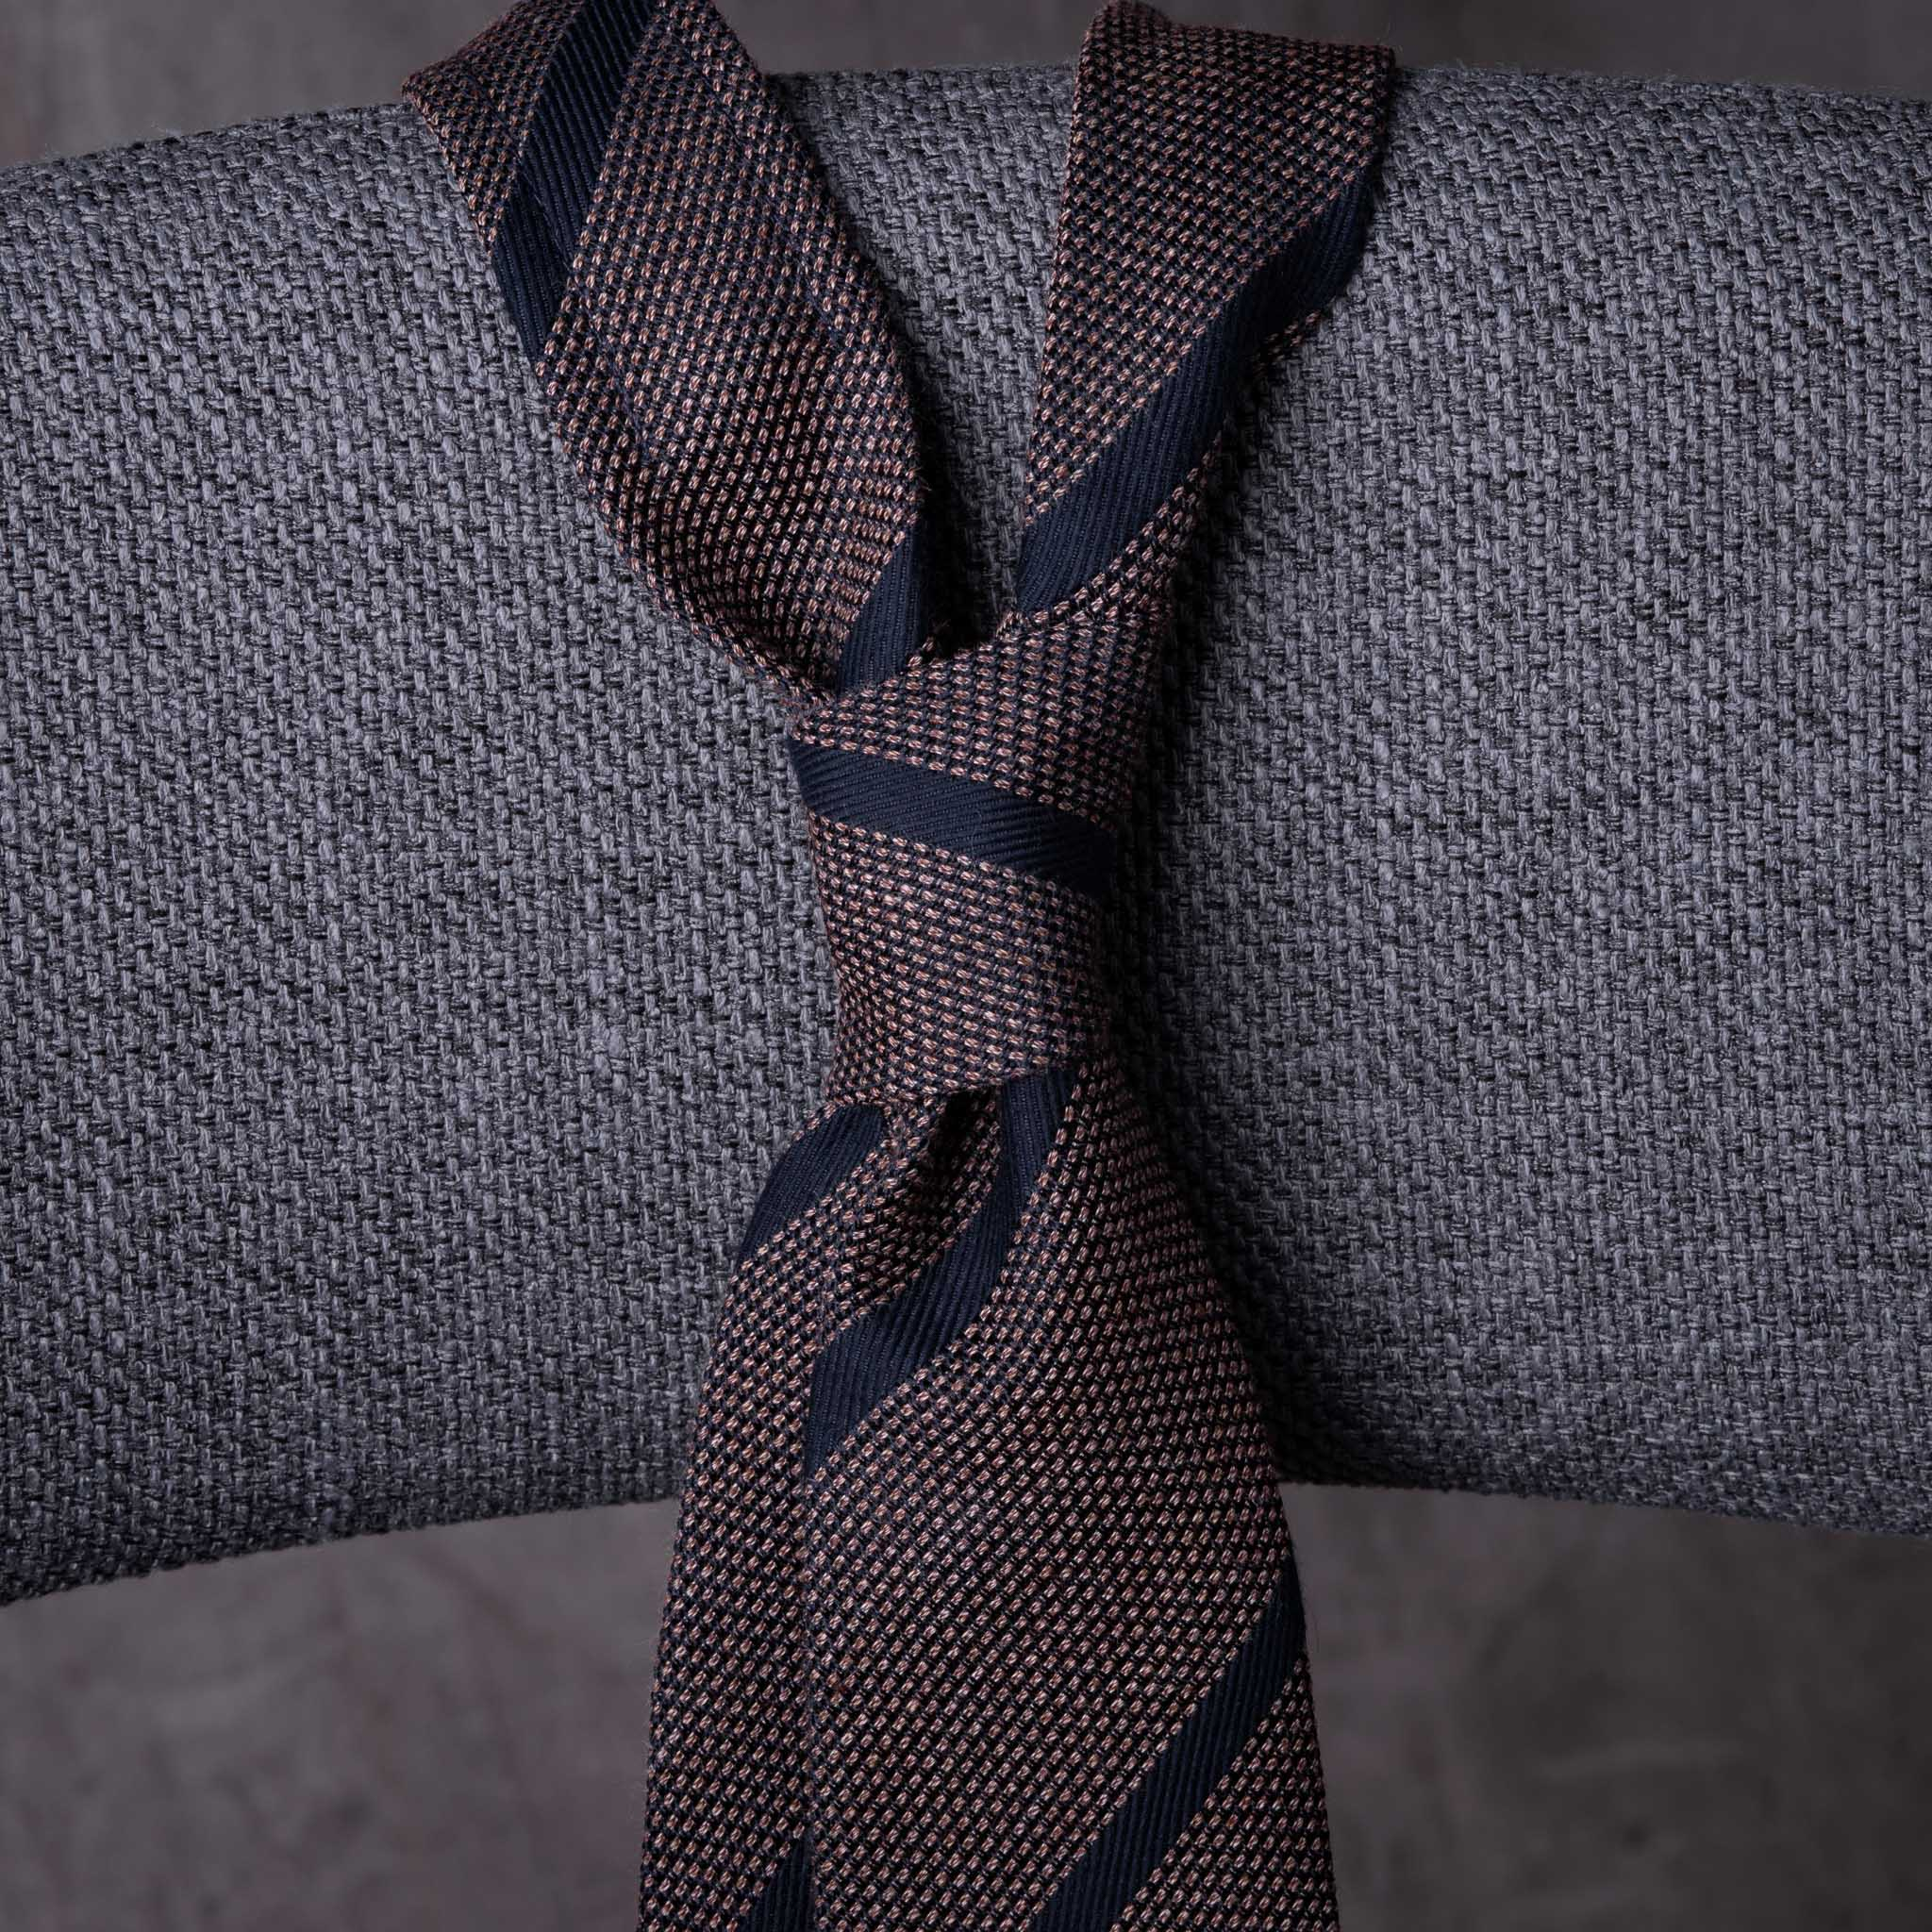 WOOL-0481-Tie-Initials-Corbata-Iniciales-The-Seelk-4